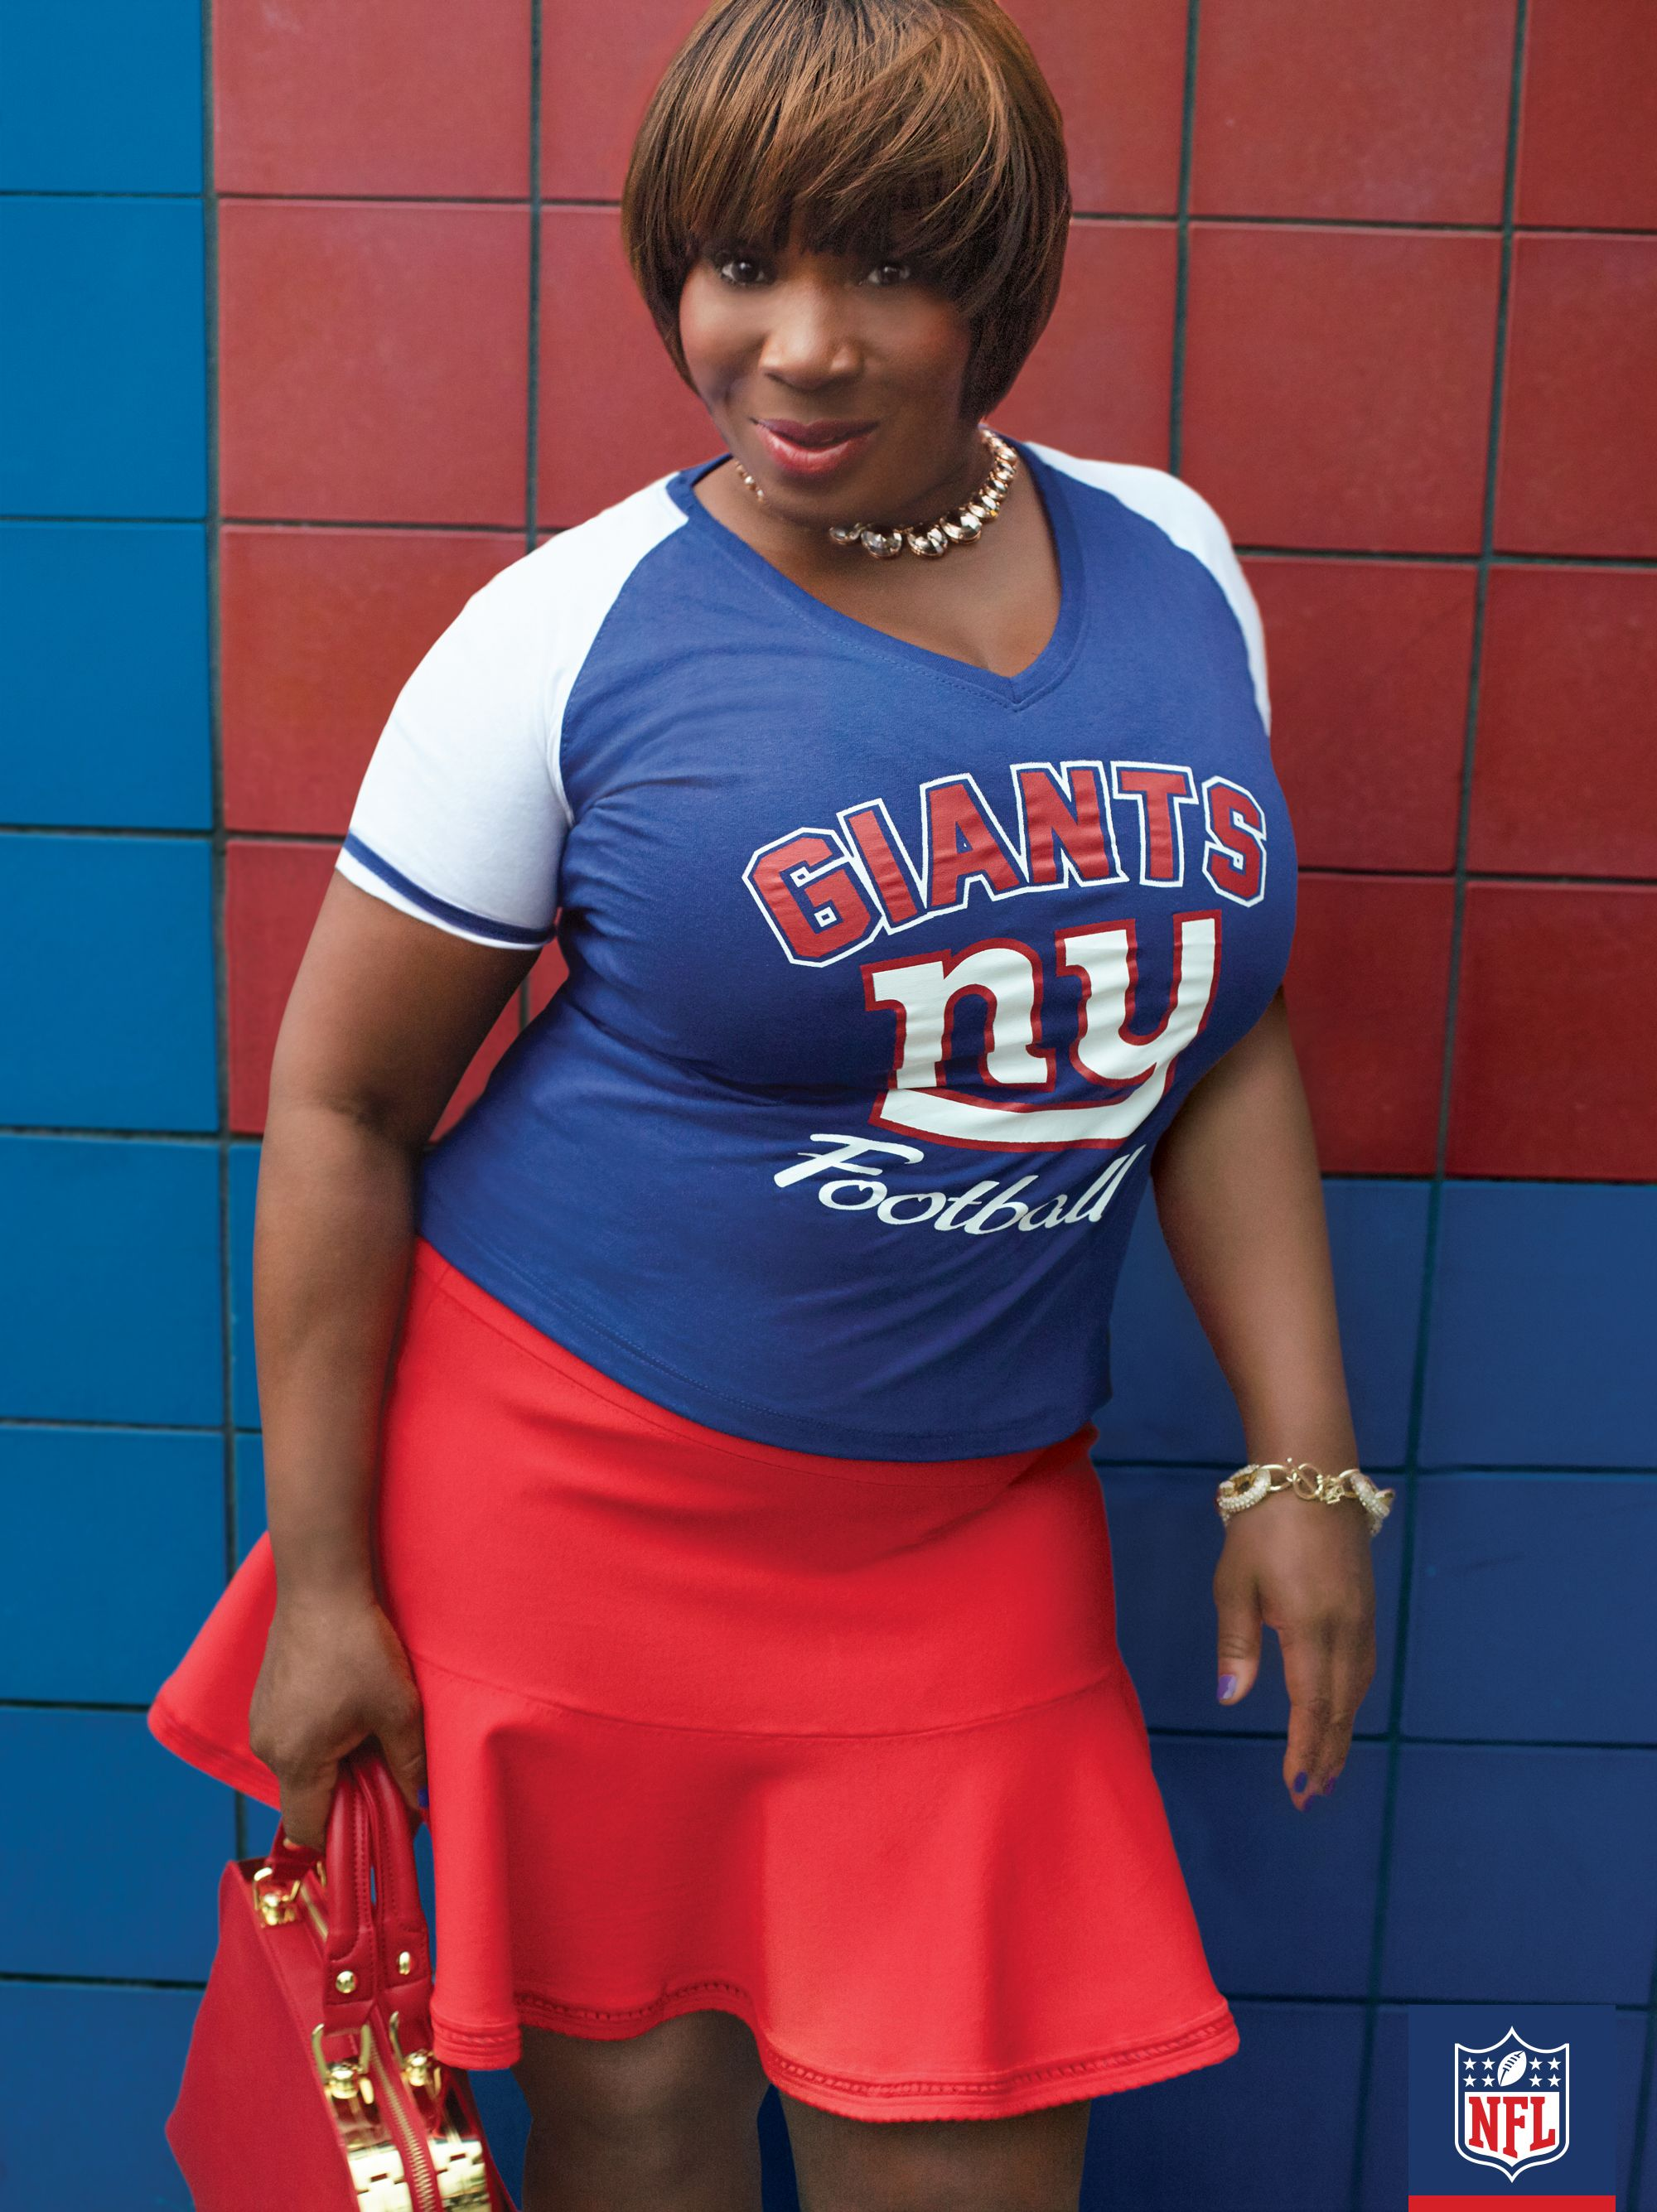 huge selection of 409aa dc060 Bevy Smith knows fashion – and football. This New York ...